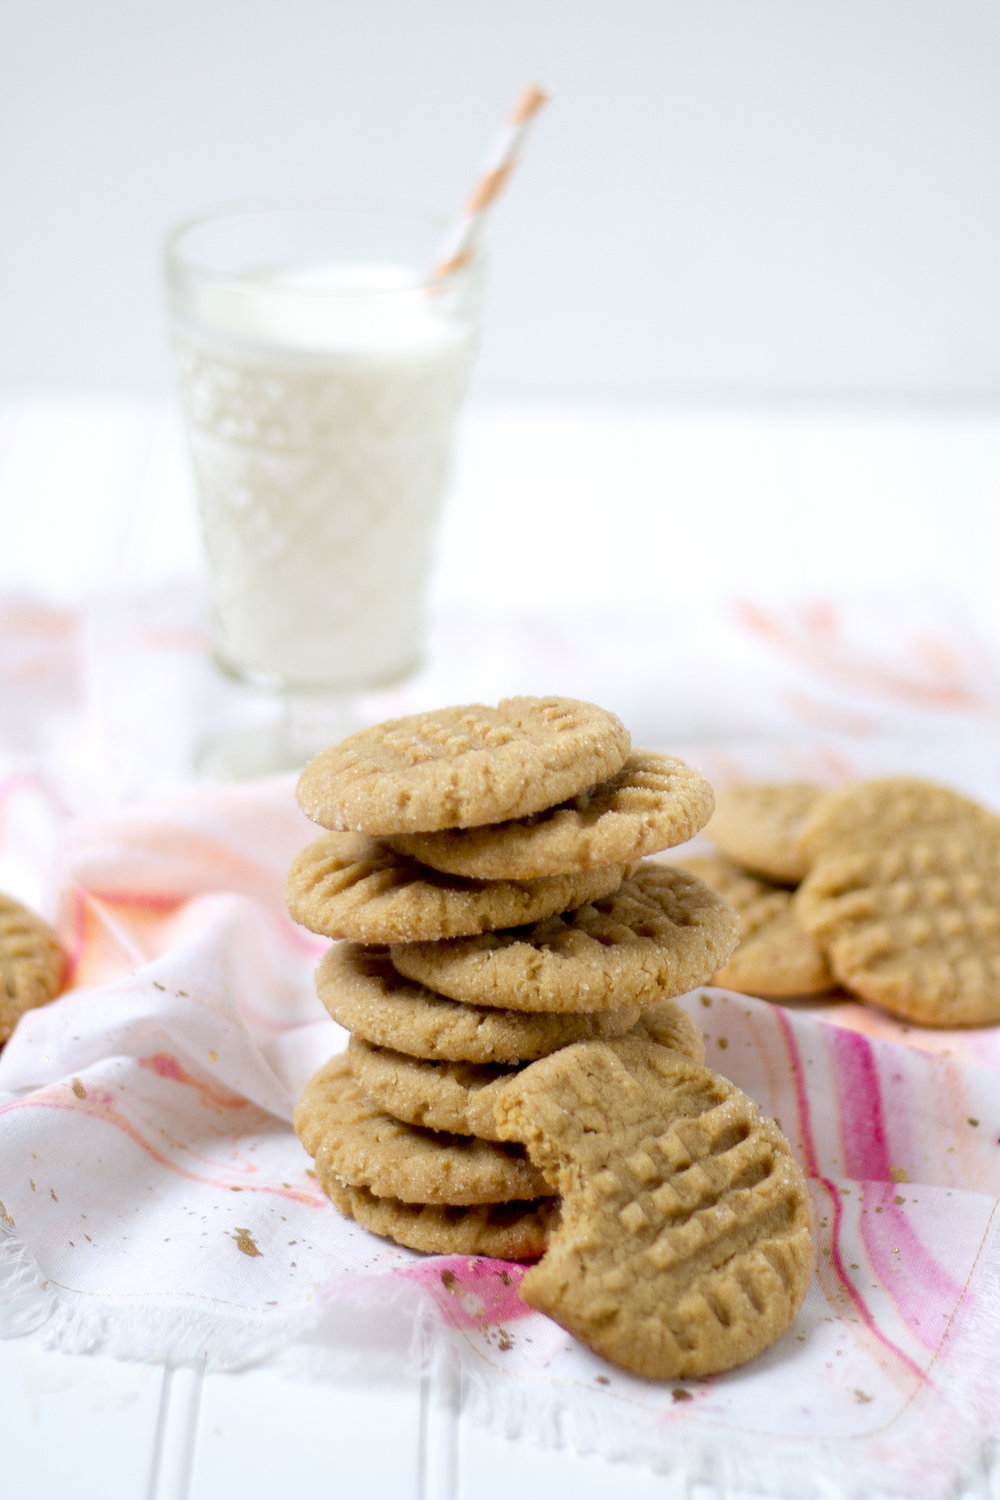 salty and sweet, the best combination! Get the recipe for these Salty Peanut Butter Cookies: unusuallylovely.com